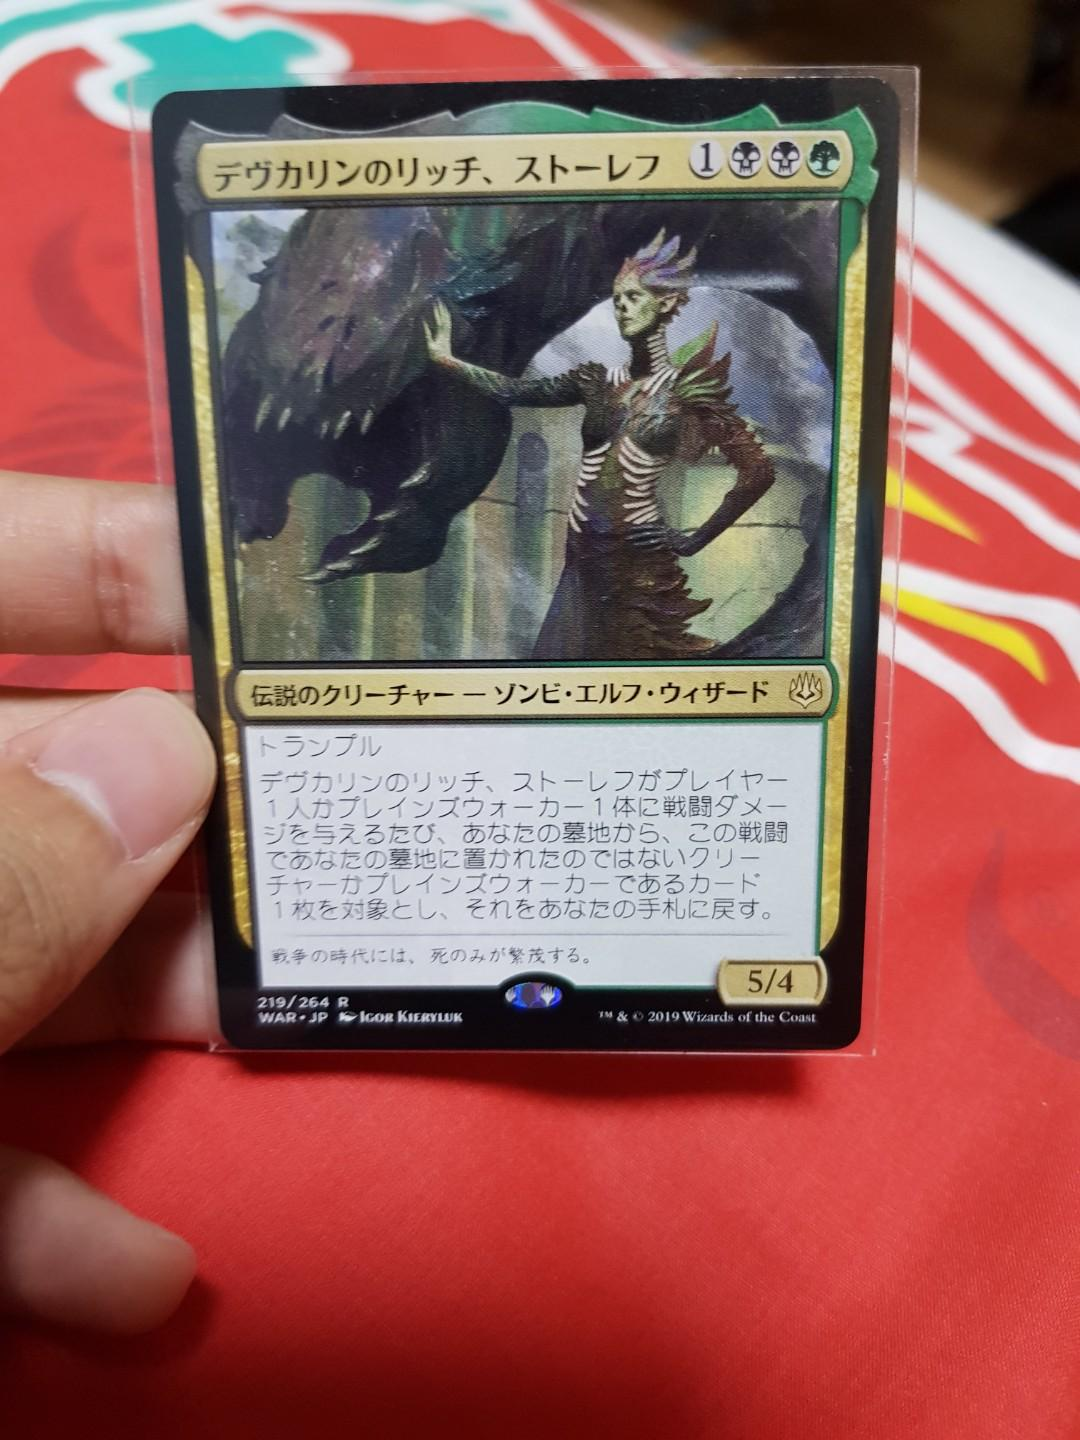 PERSEGUITARE PERSECUTE Magic USG Mint